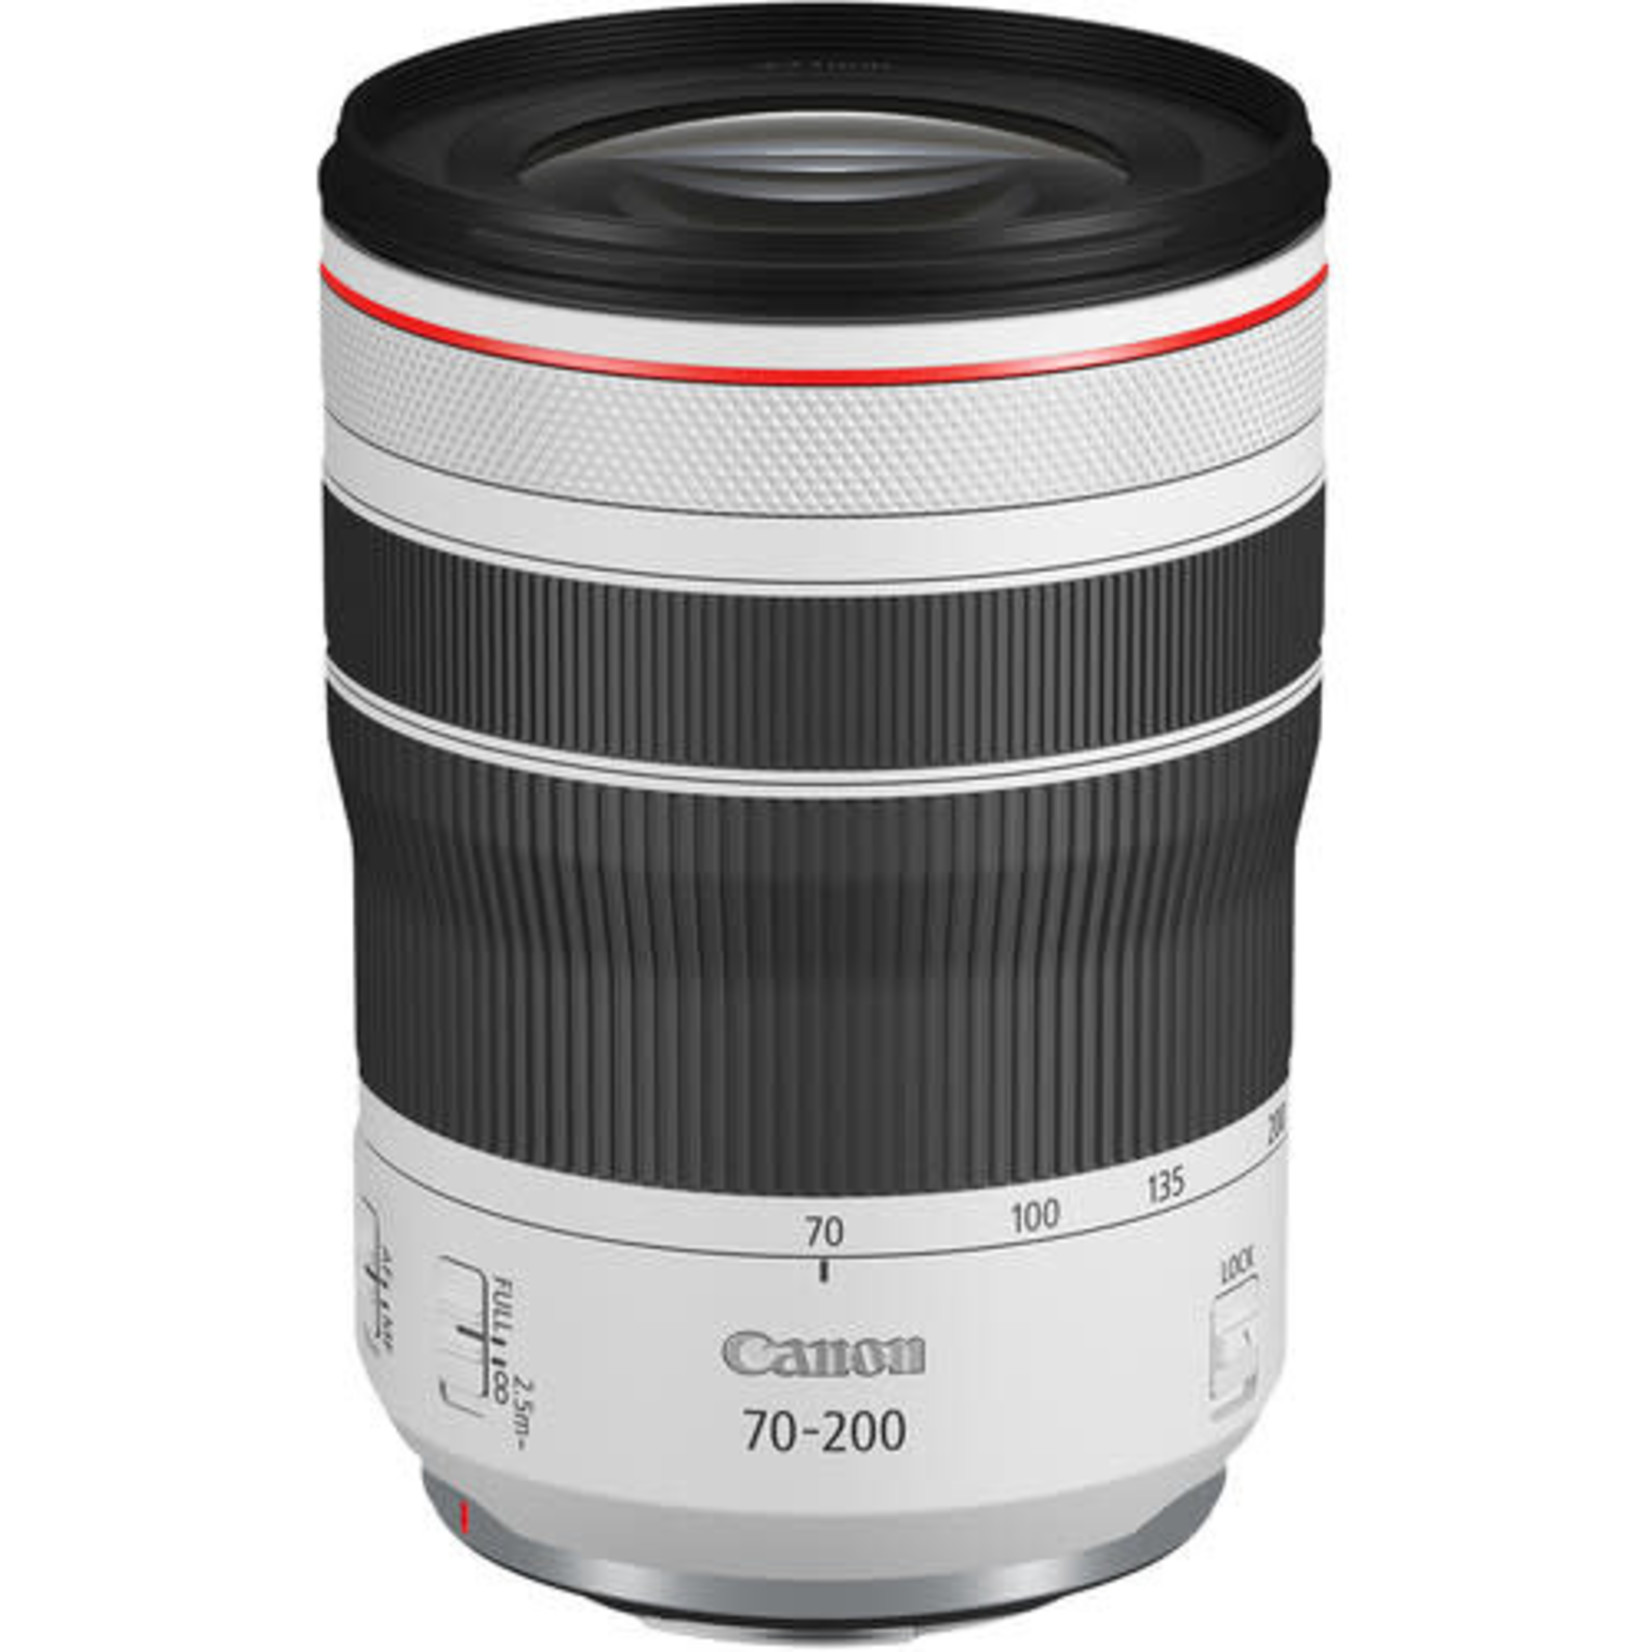 Canon Canon RF 70-200mm f/4L IS USM Lens